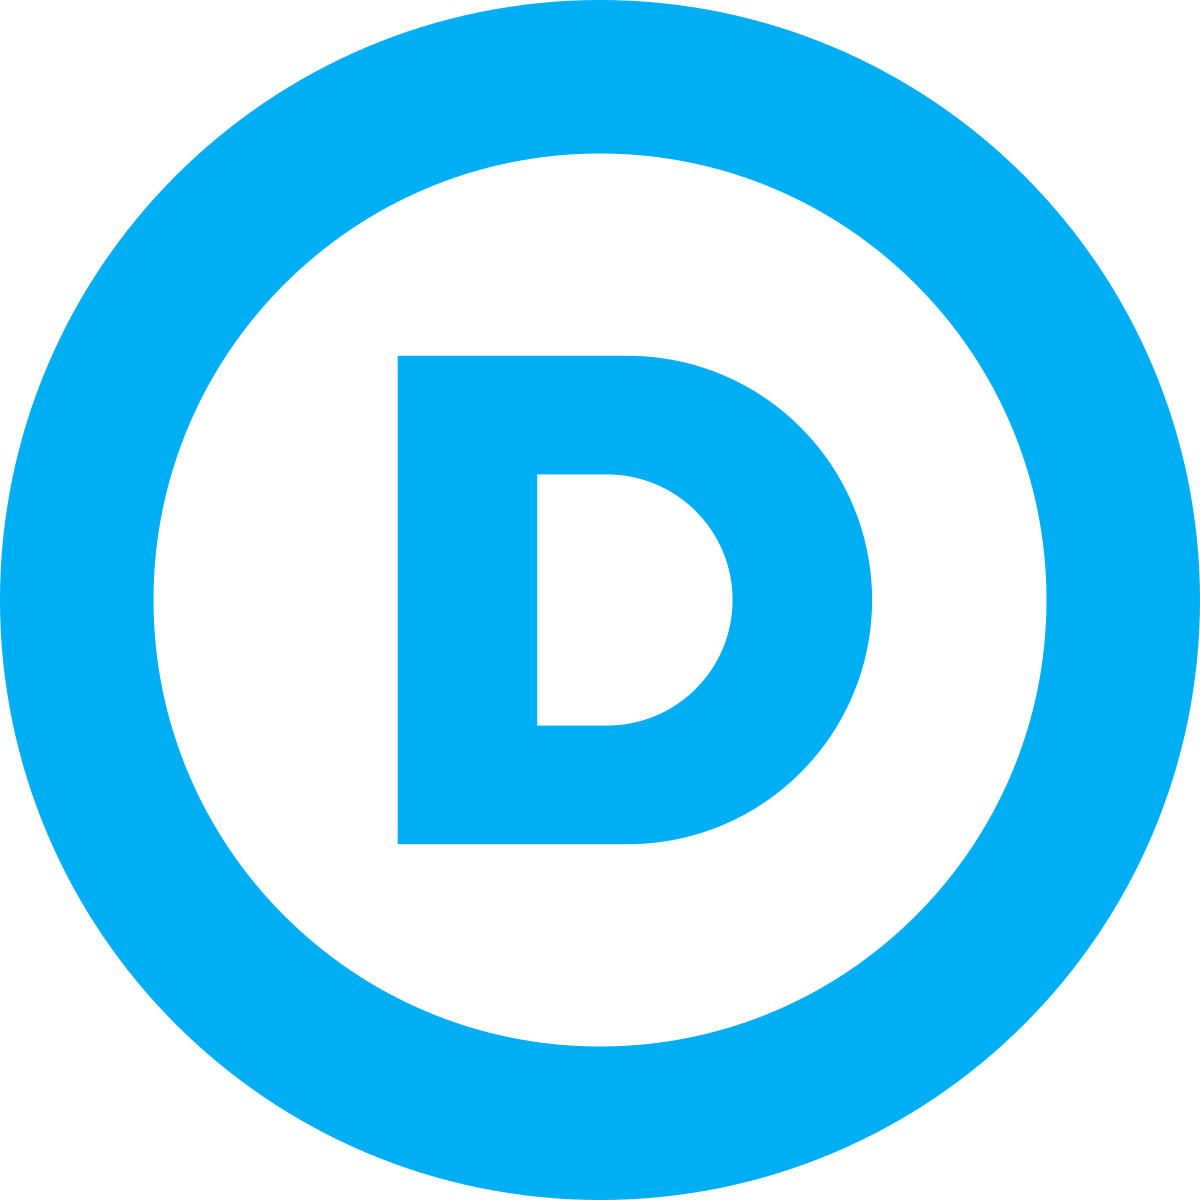 David star and circle clipart picture library Democratic Party (United States) - Wikipedia picture library